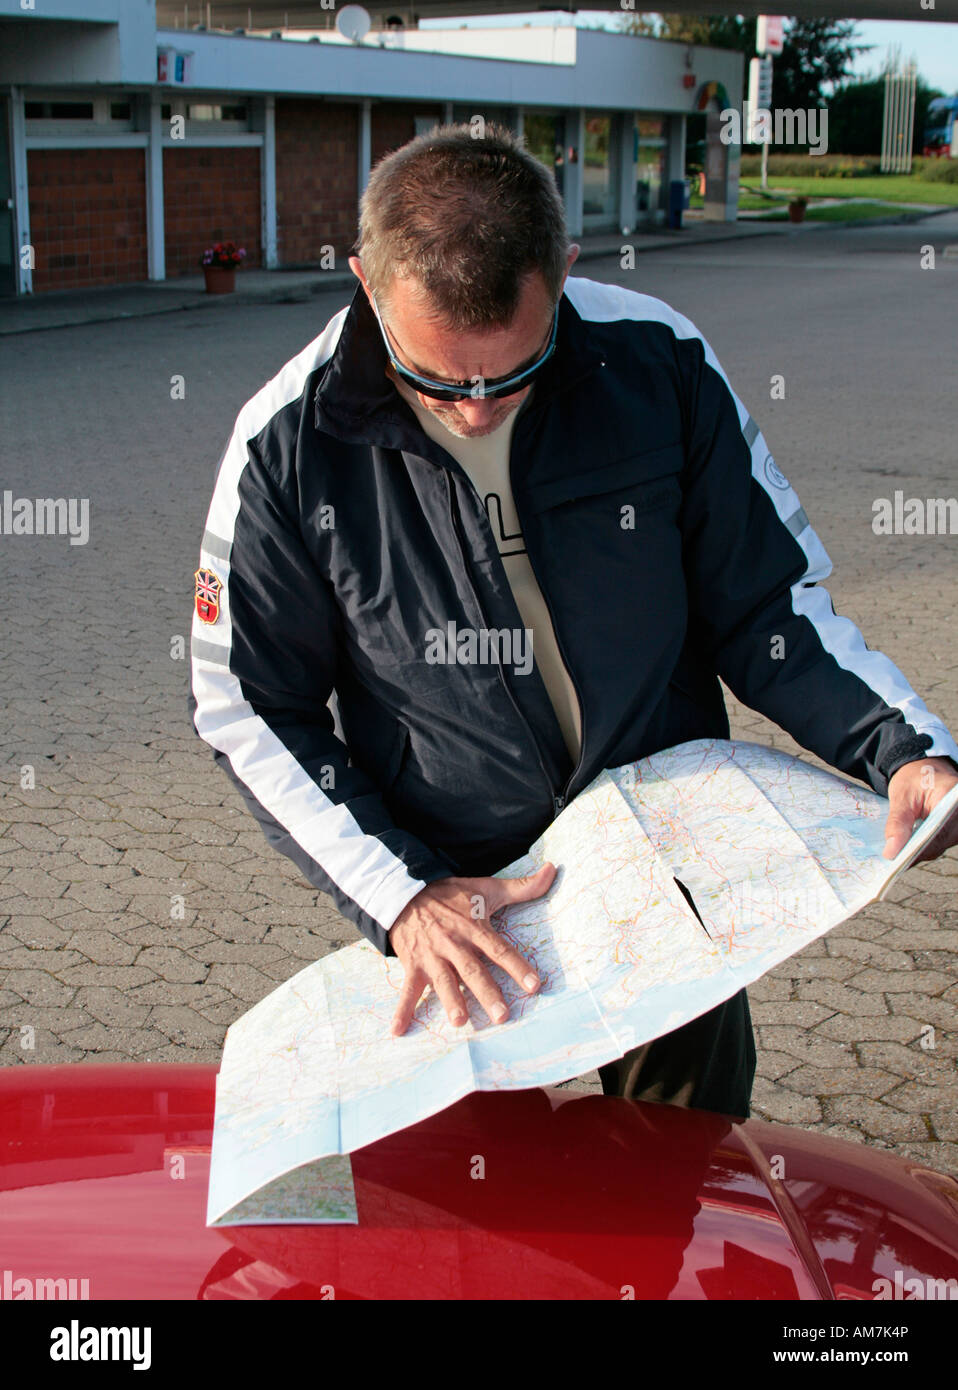 Driver looking for the dstination with the old, conventional means, Malente, Schleswig-Holstein, Germany - Stock Image